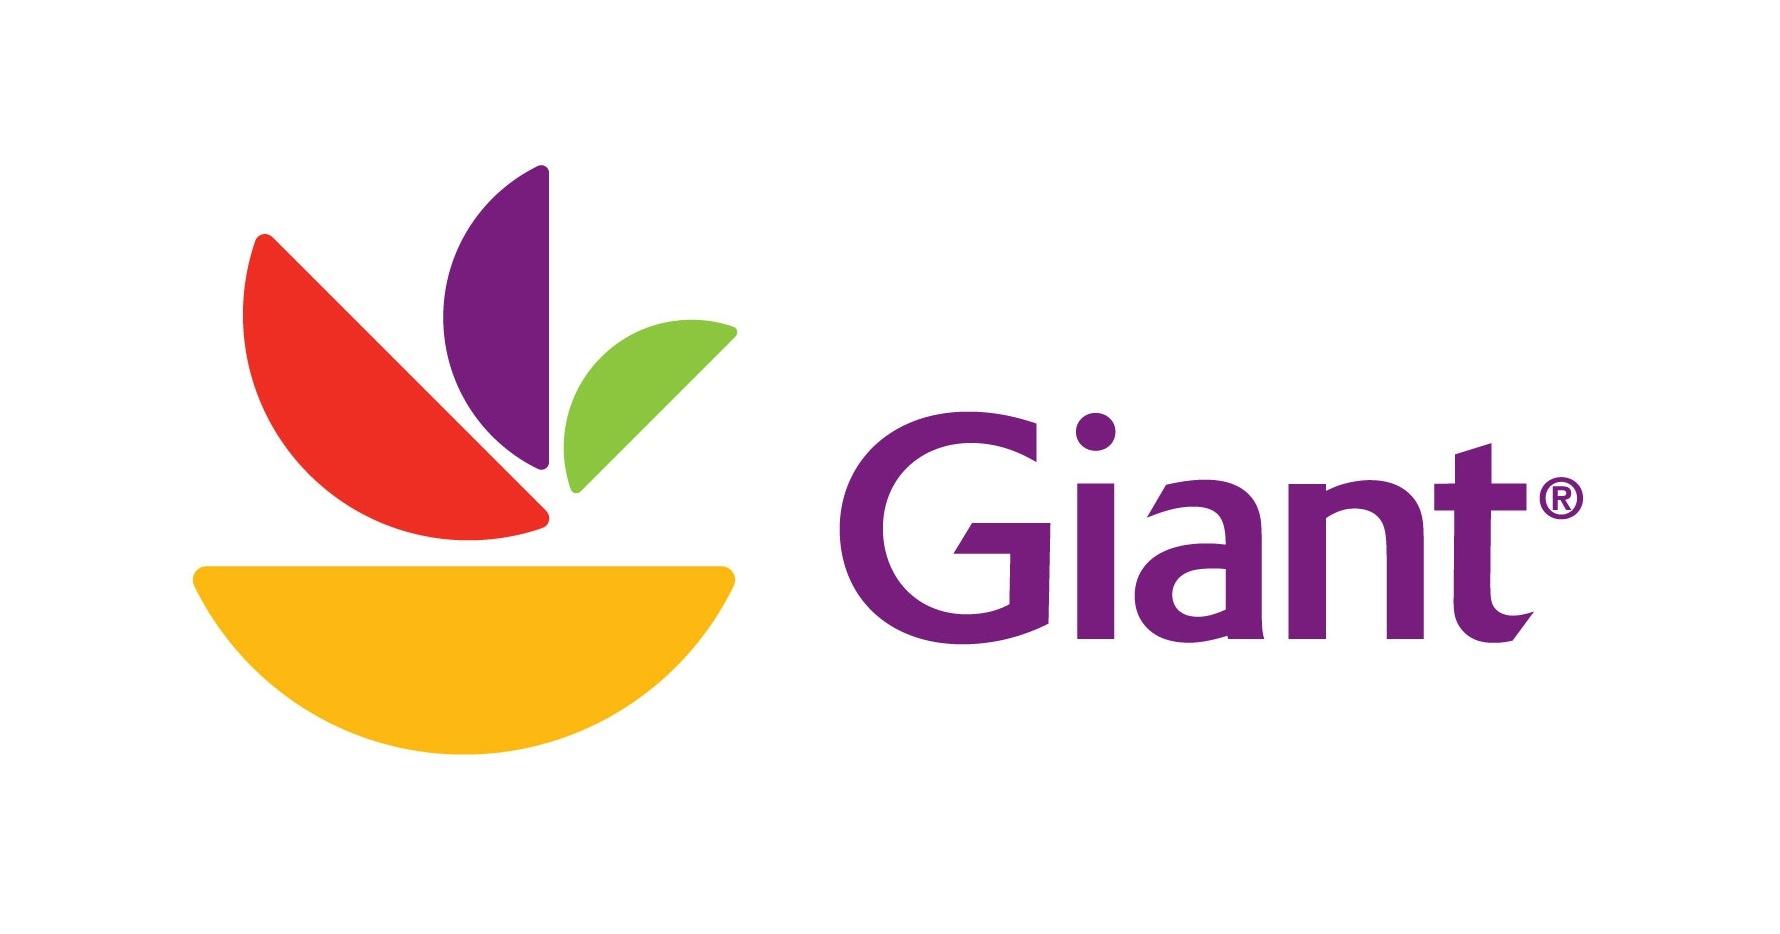 Giant_LogoH-color.JPG